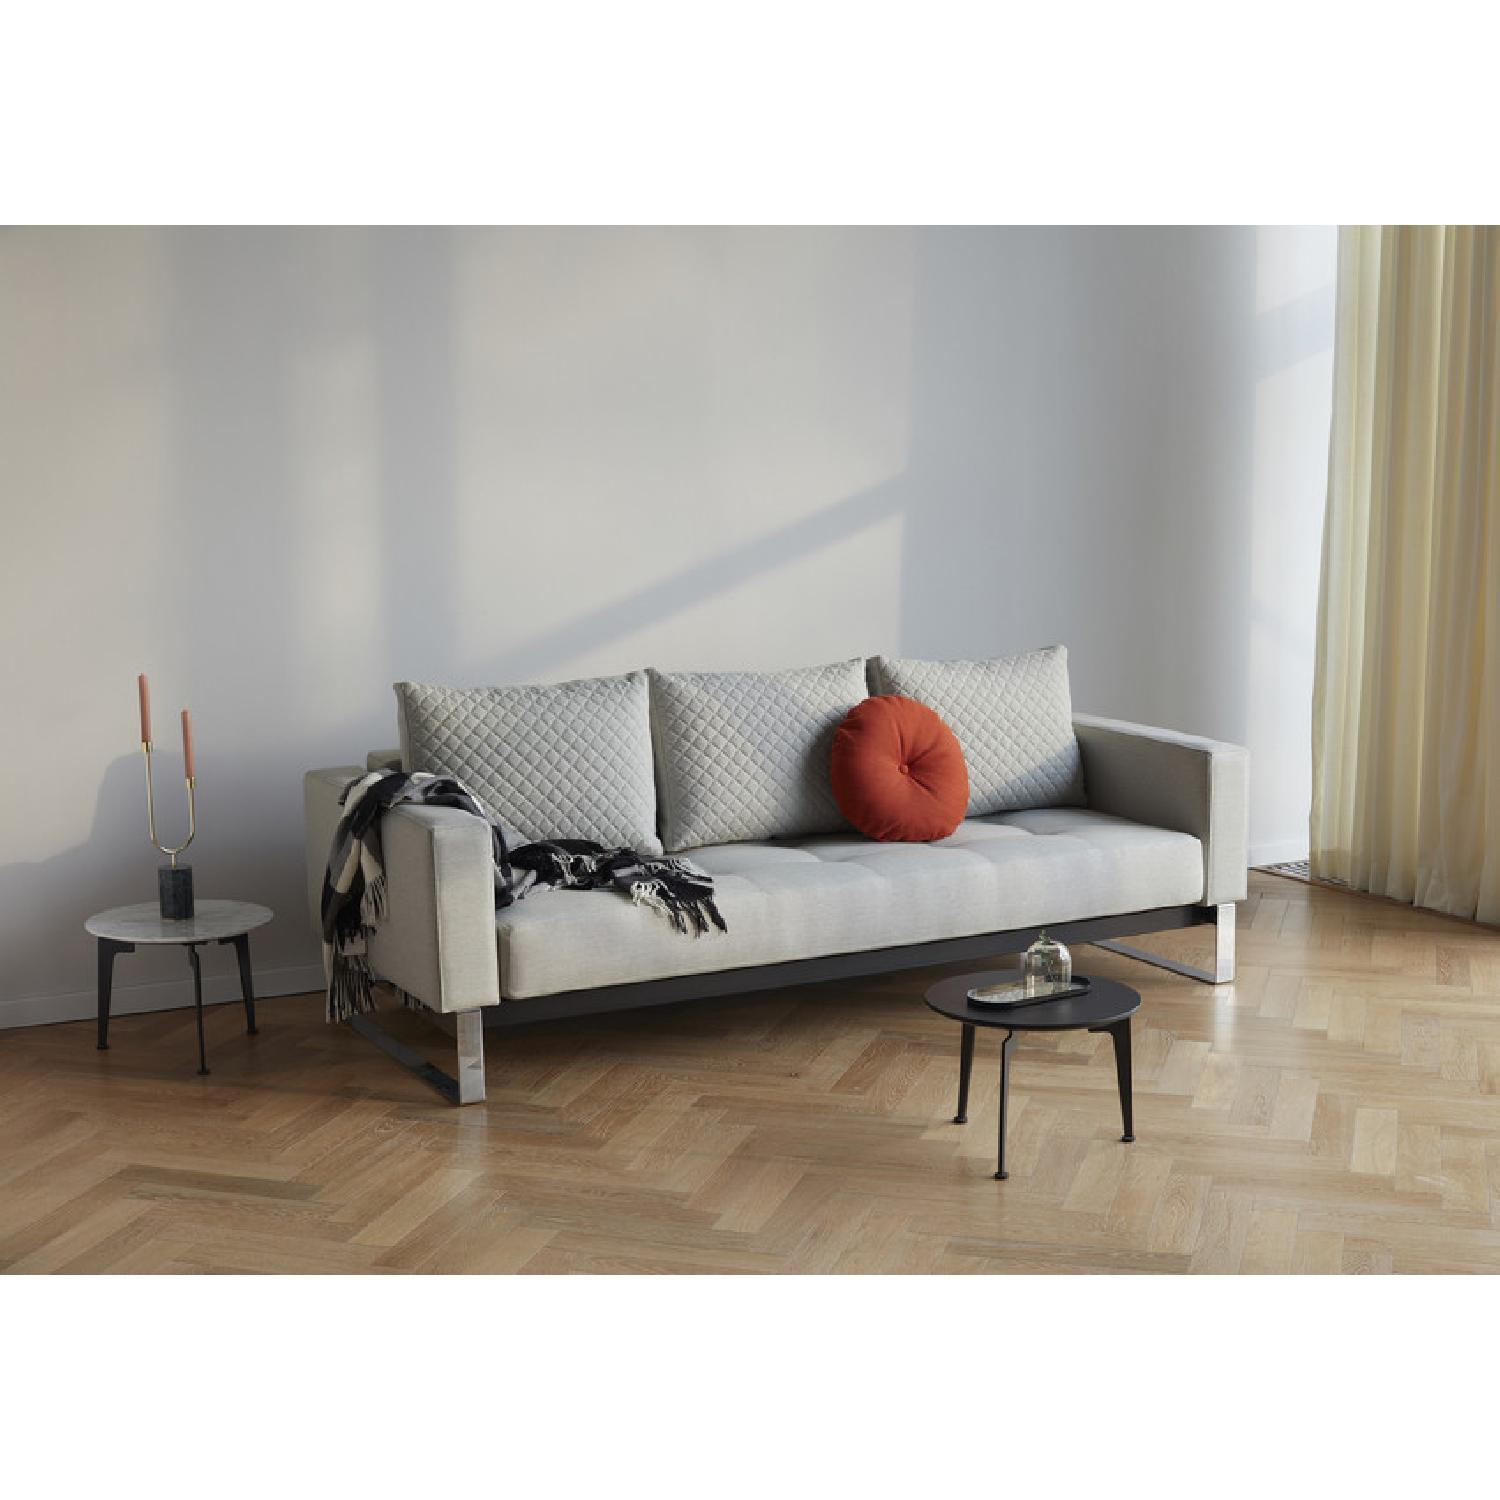 Innovation USA Cassius Quilt Deluxe Sleeper Sofa - image-2